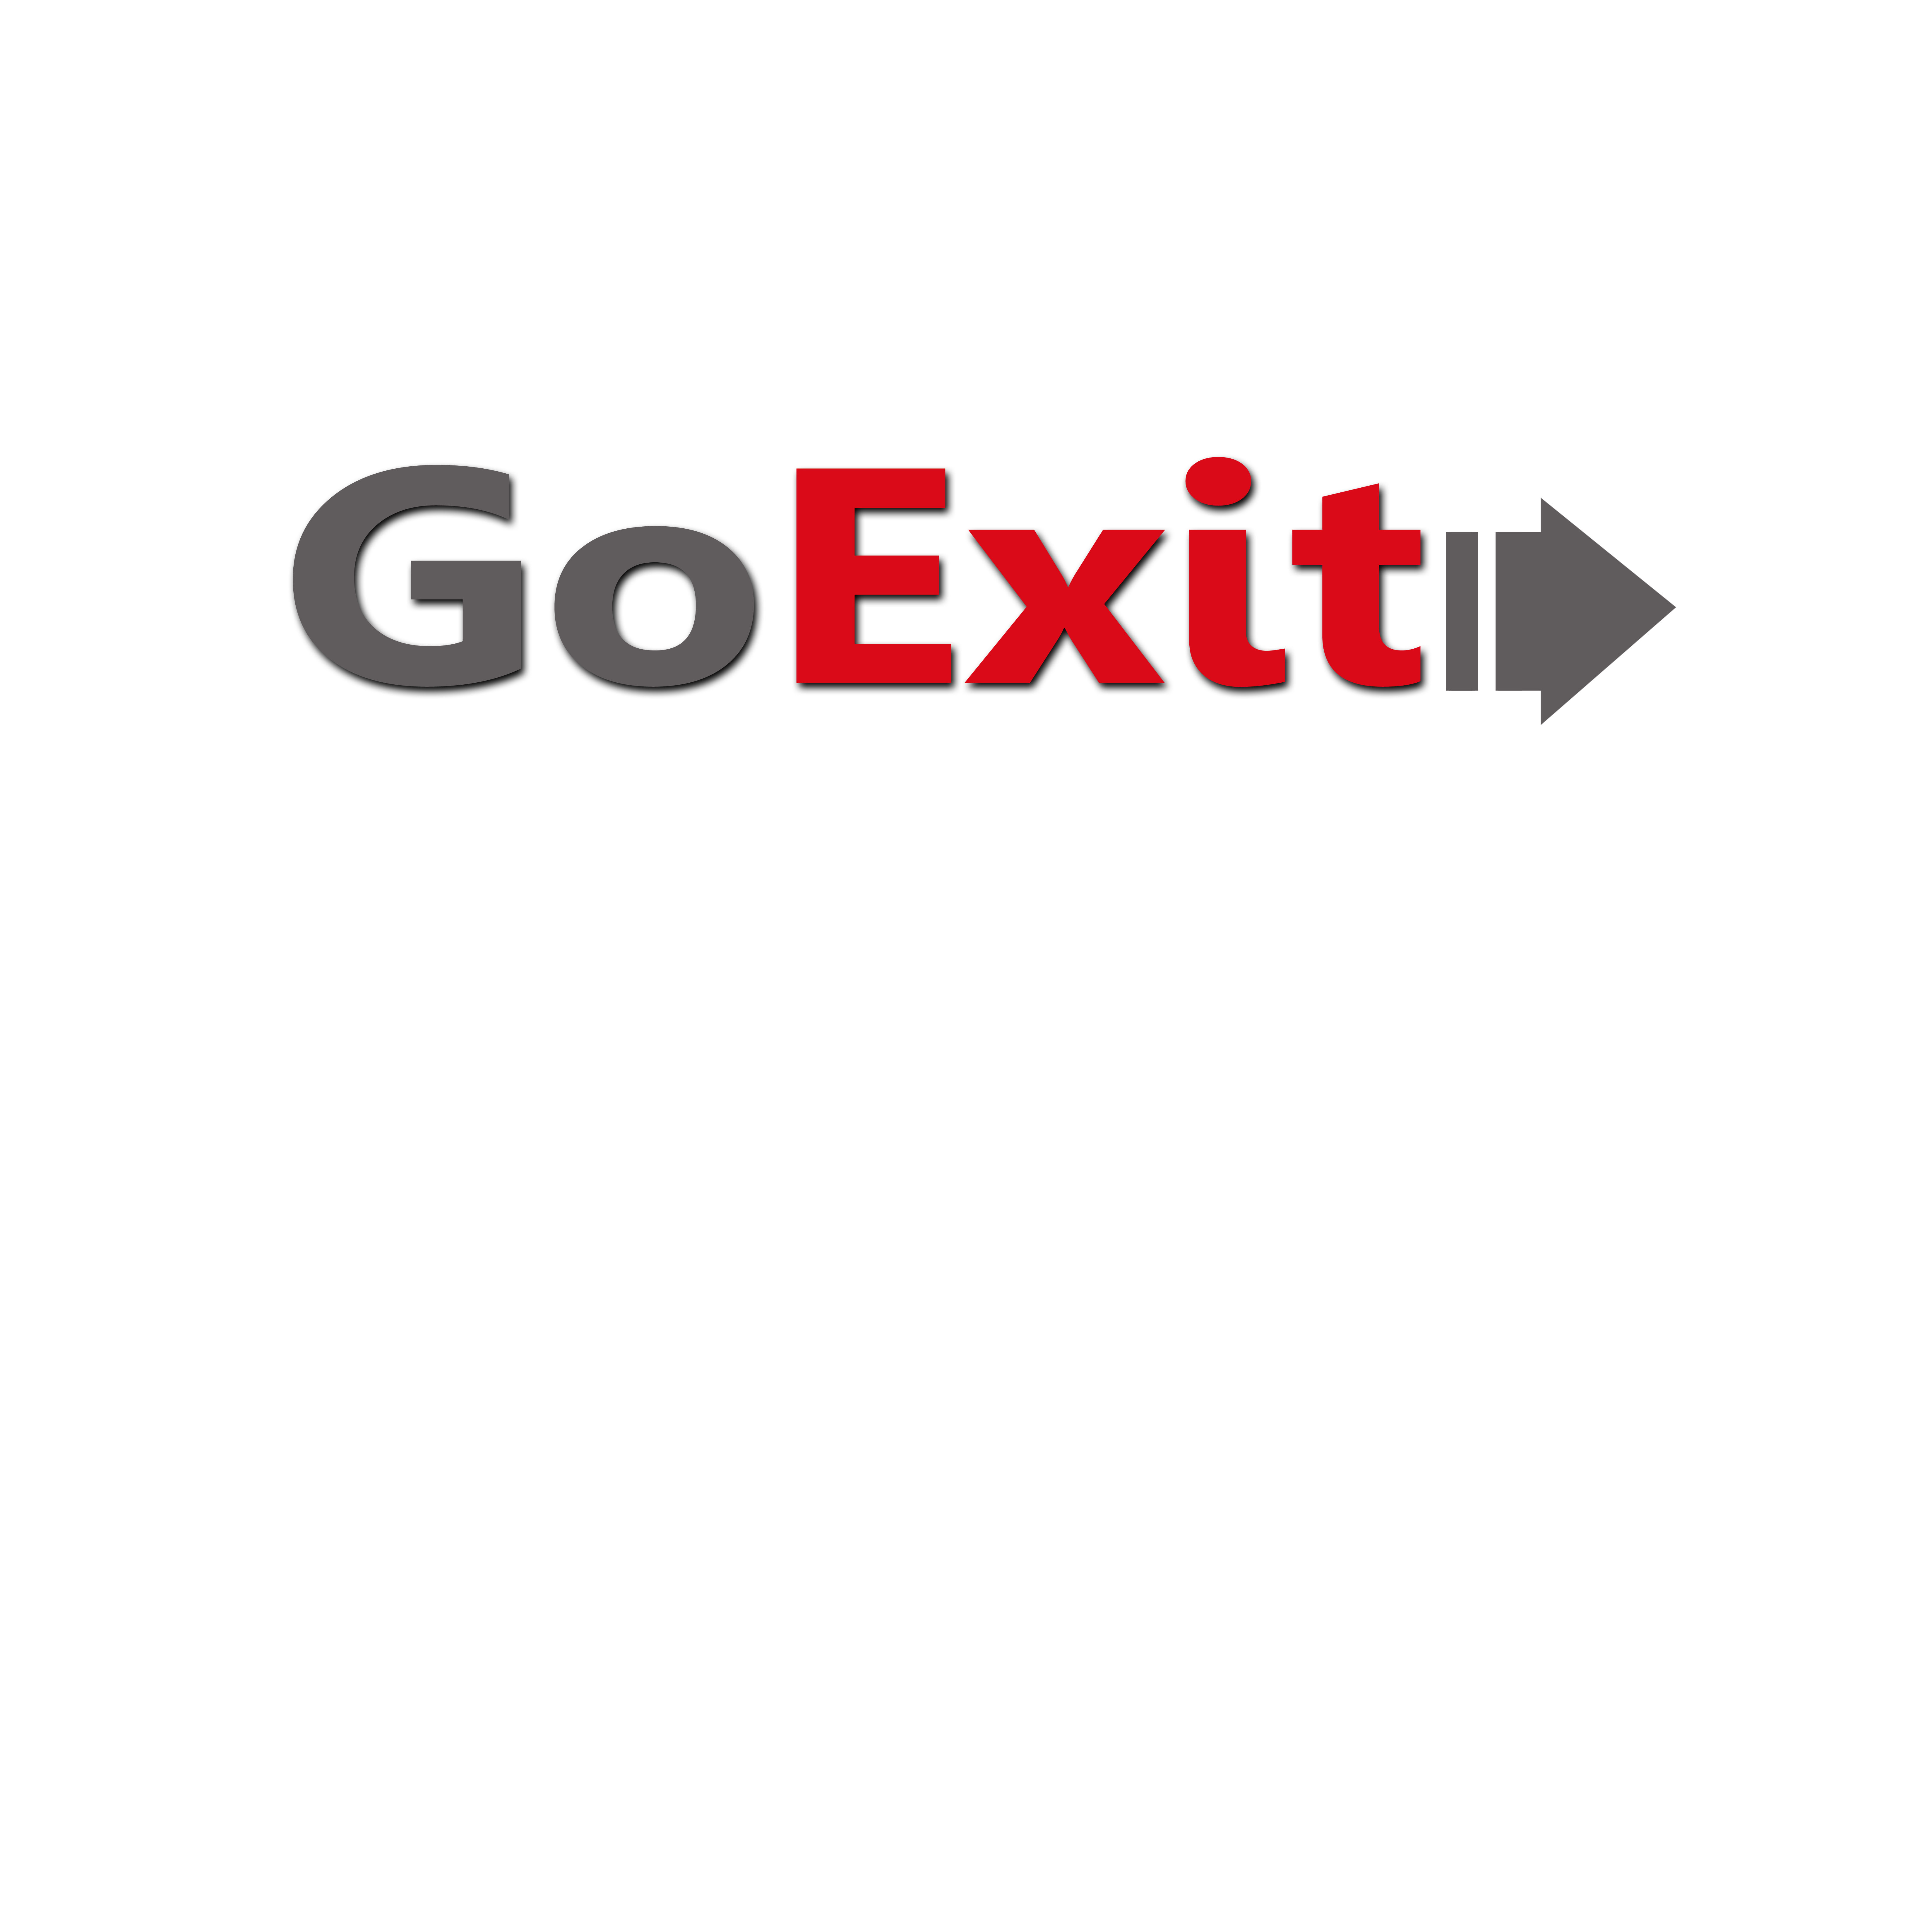 Logo Design by Allan Esclamado - Entry No. 152 in the Logo Design Contest GoExit Logo Design.